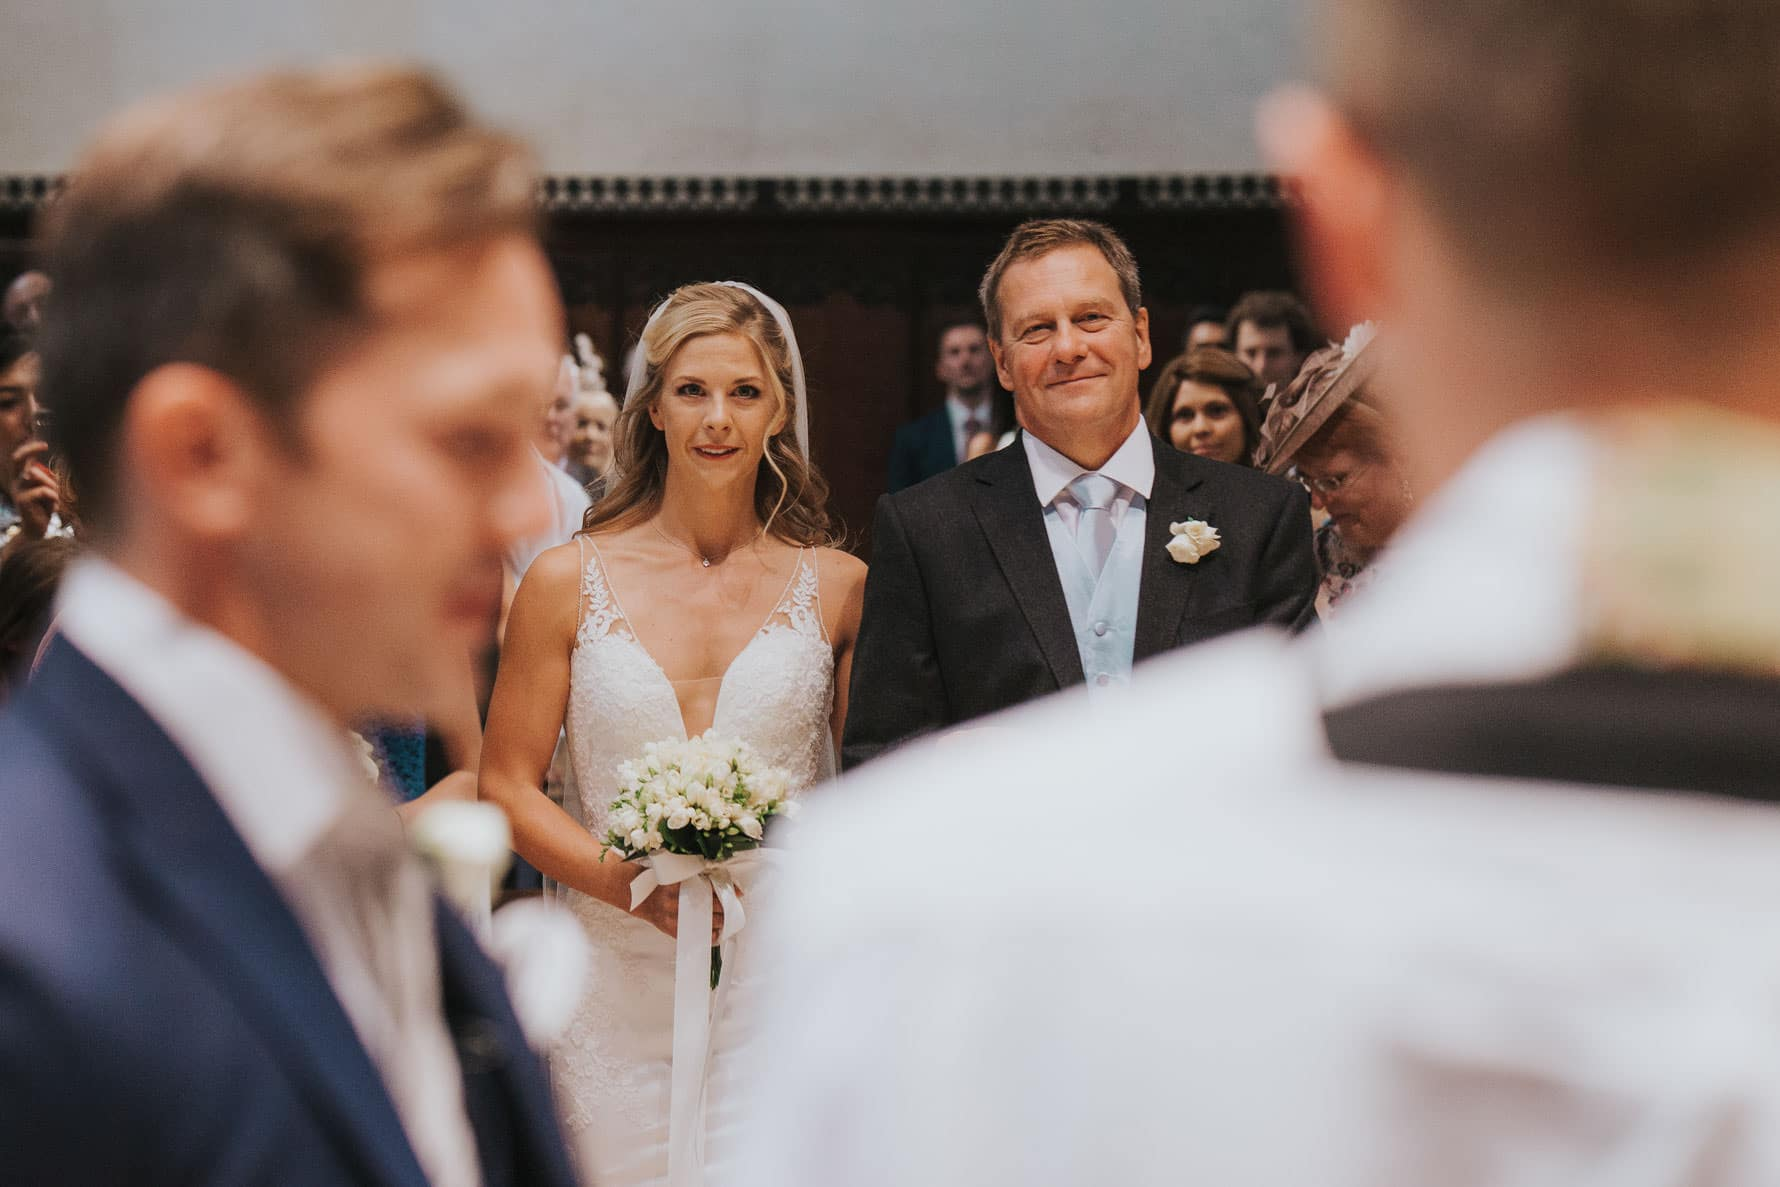 Bride and her father walking down the aisle - Cambridge wedding photographer